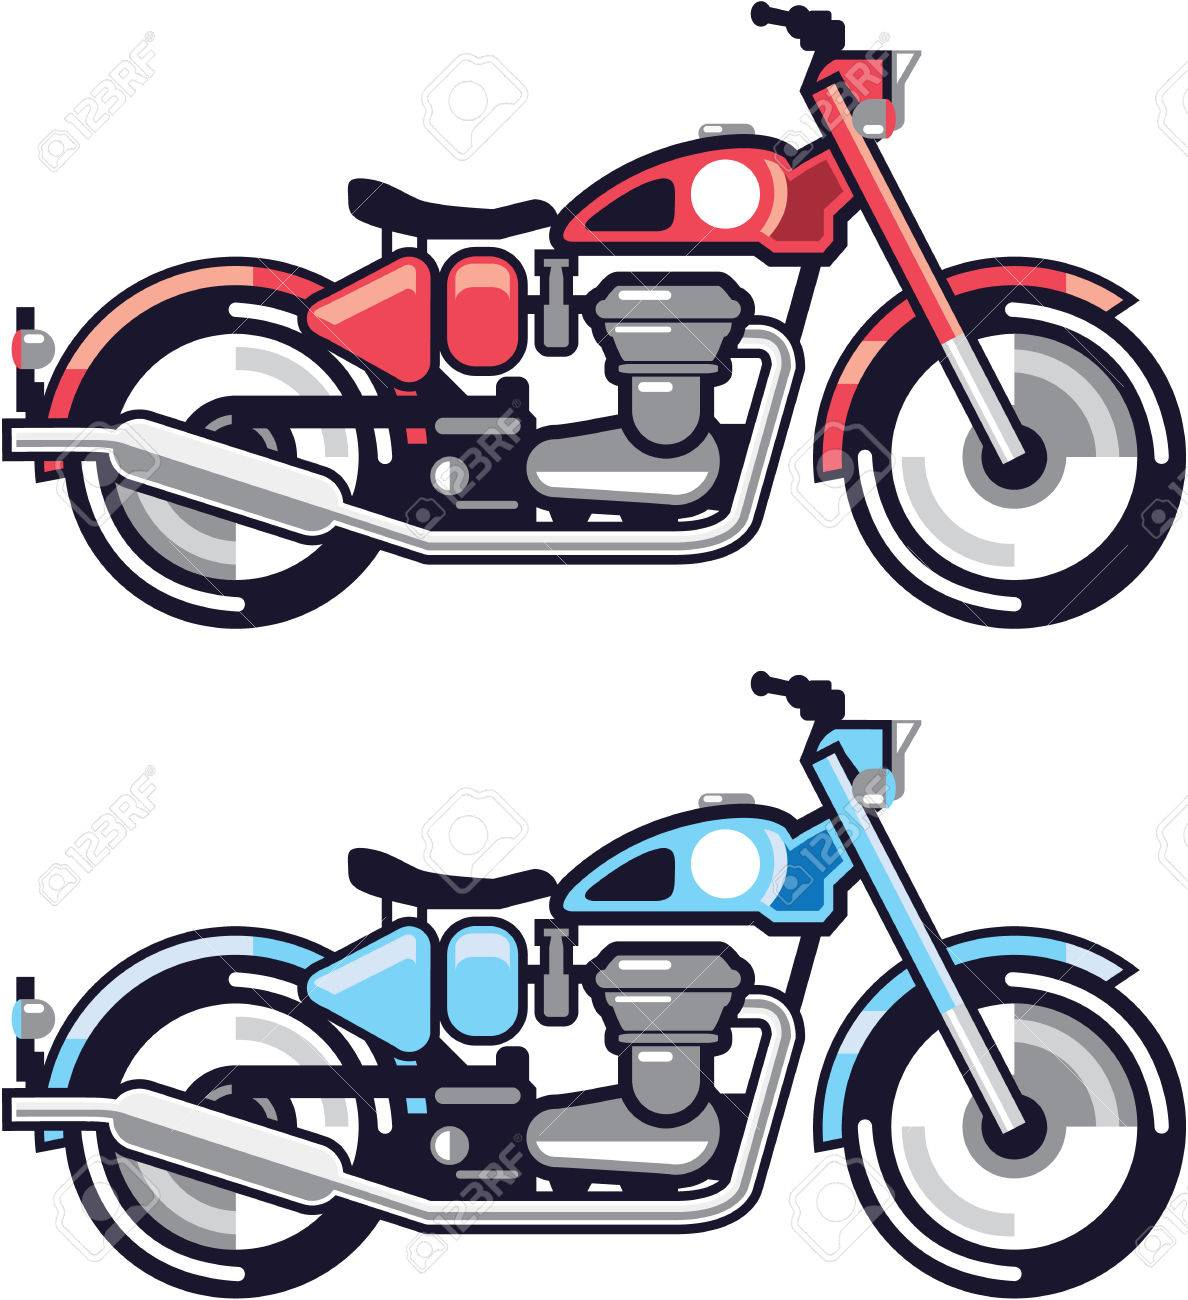 Vintage Motorcycle Vector Stylized Illustration Clip Art Image Royalty Free Cliparts Vectors And Stock Illustration Image 69650830